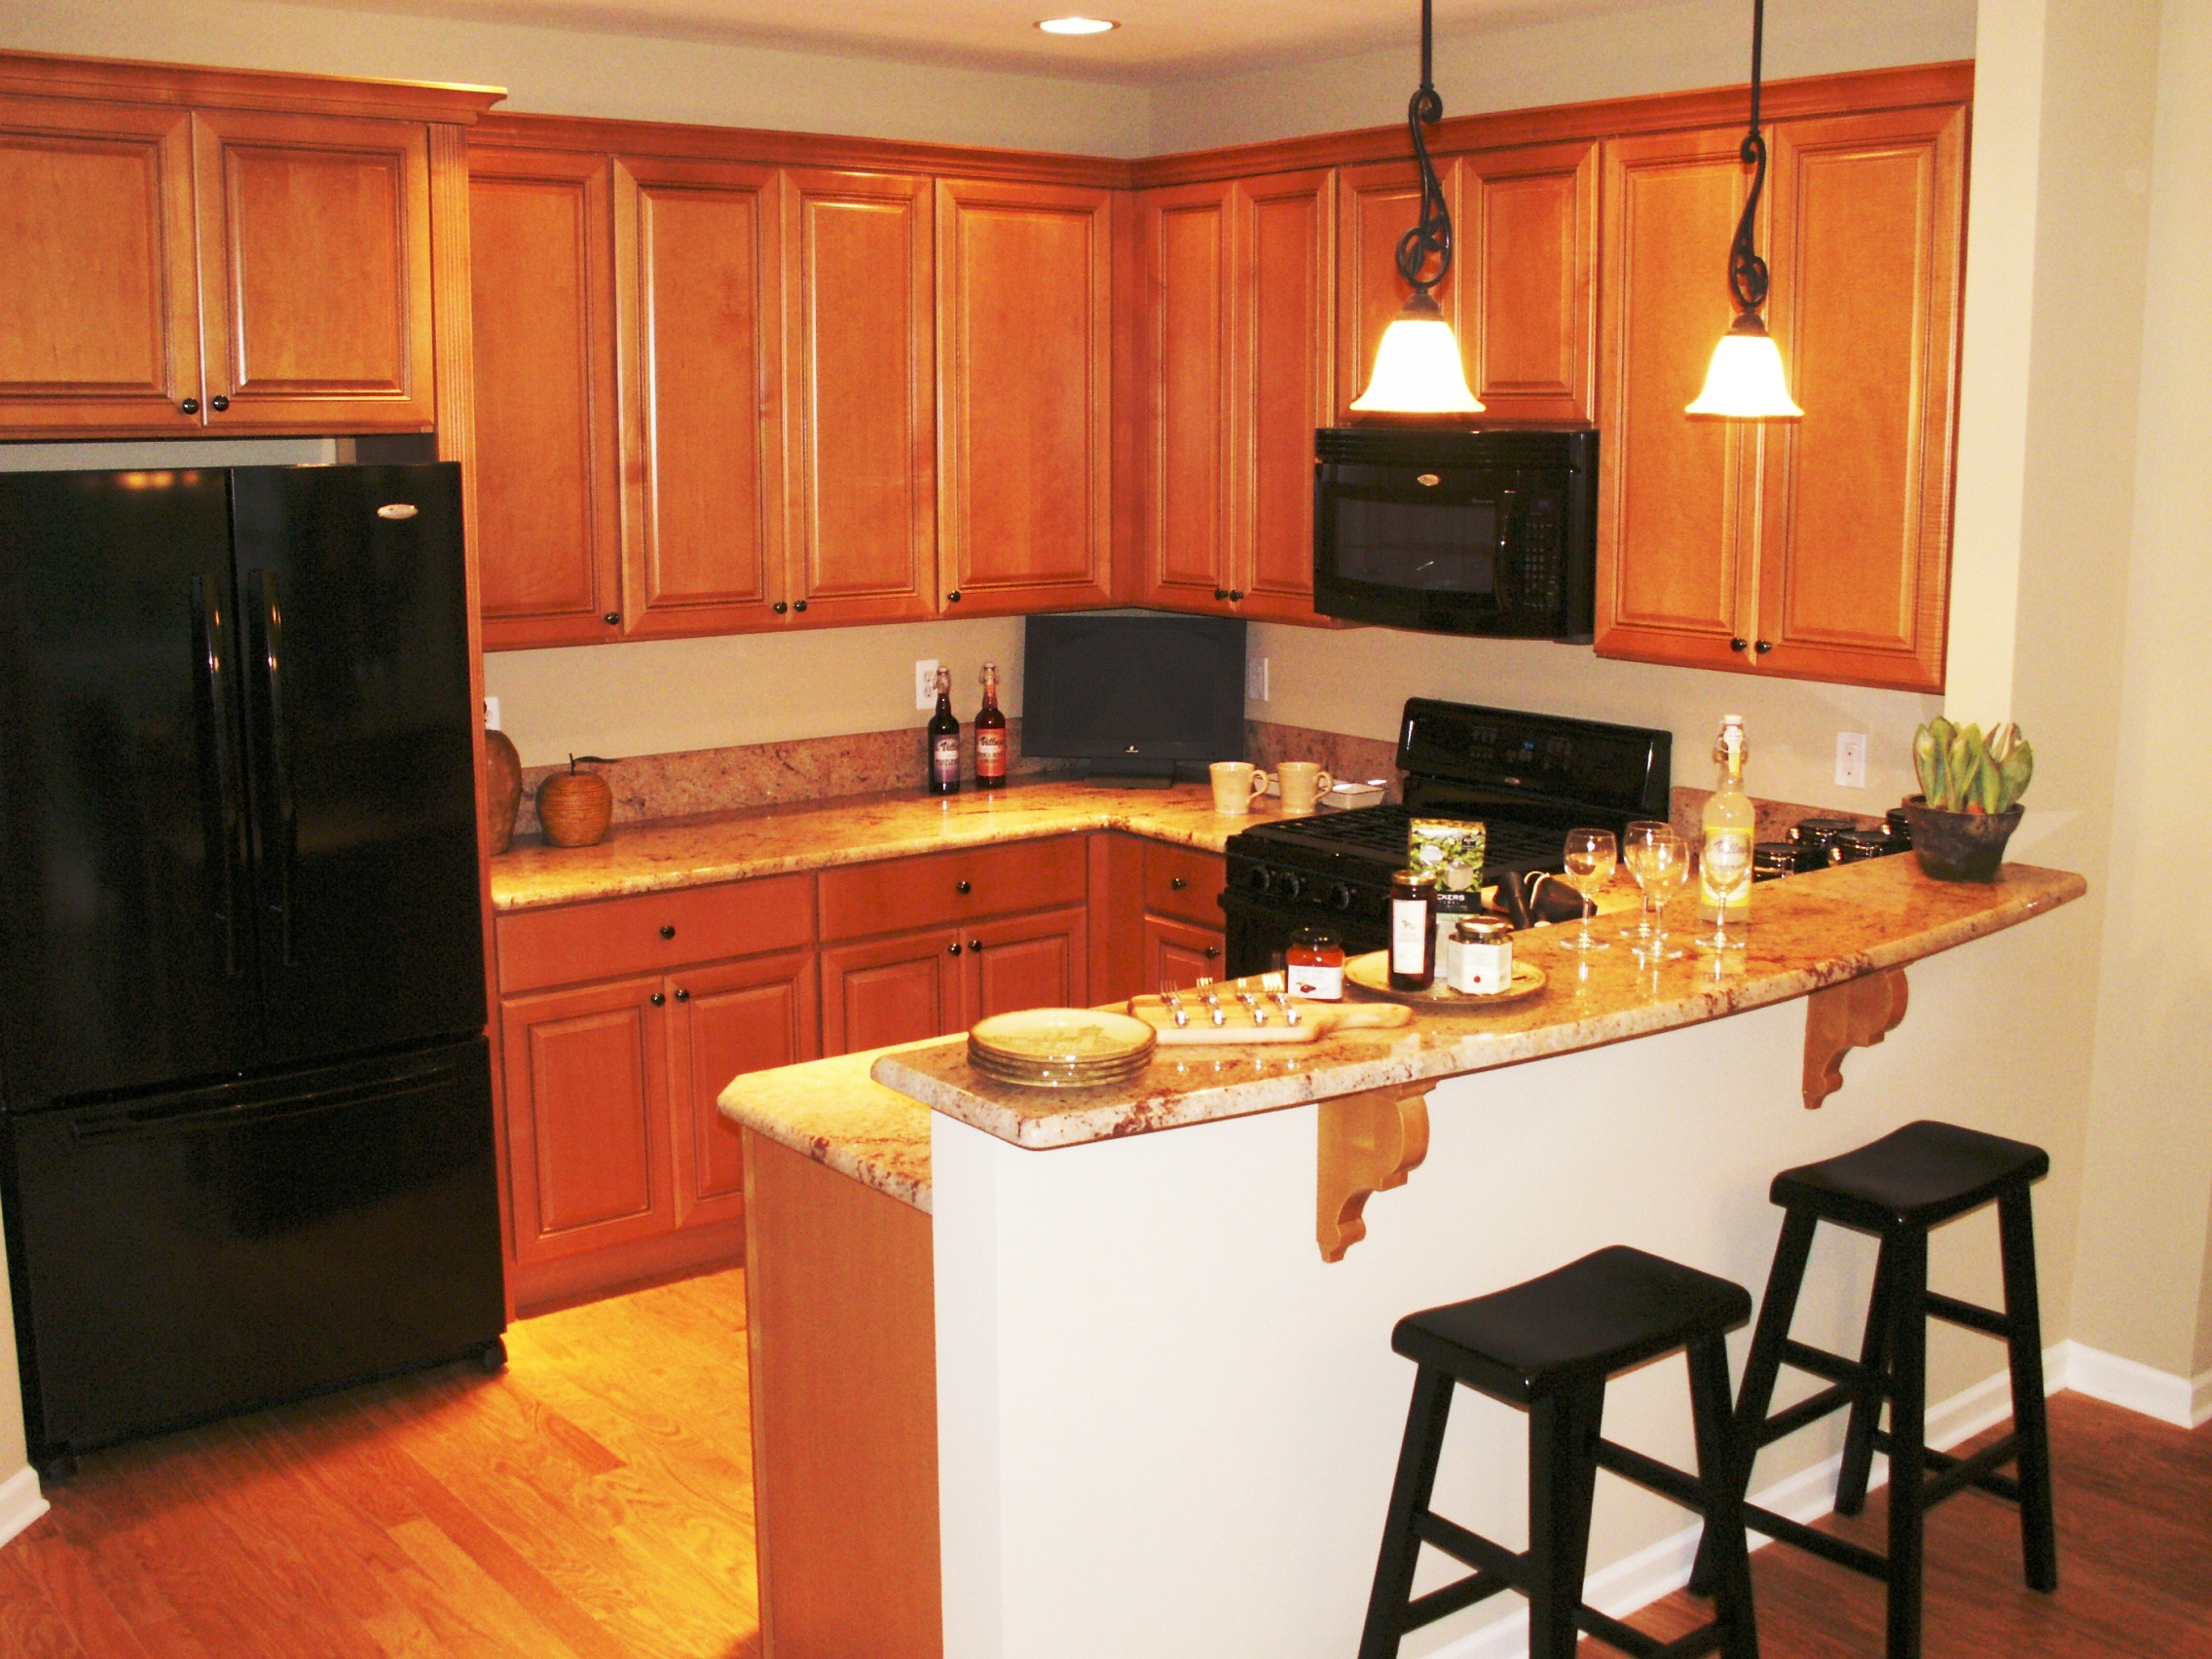 New model preview at 55 community covington village a for New model kitchen